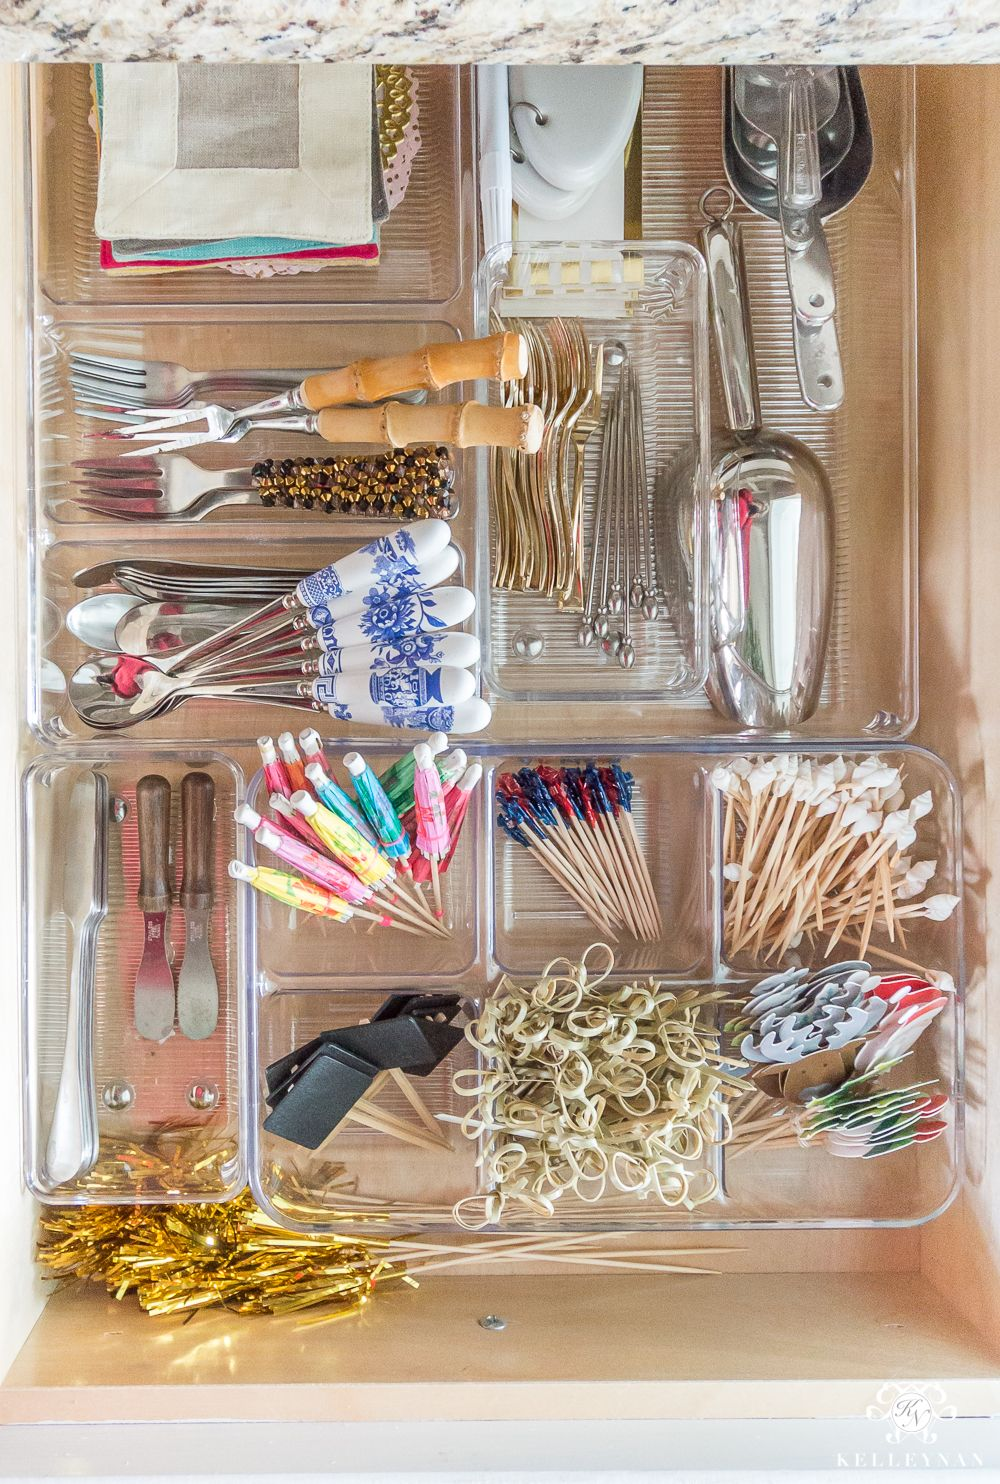 organization ideas for a small butler s pantry with images diy pantry organization kitchen on kitchen organization tiktok id=68921